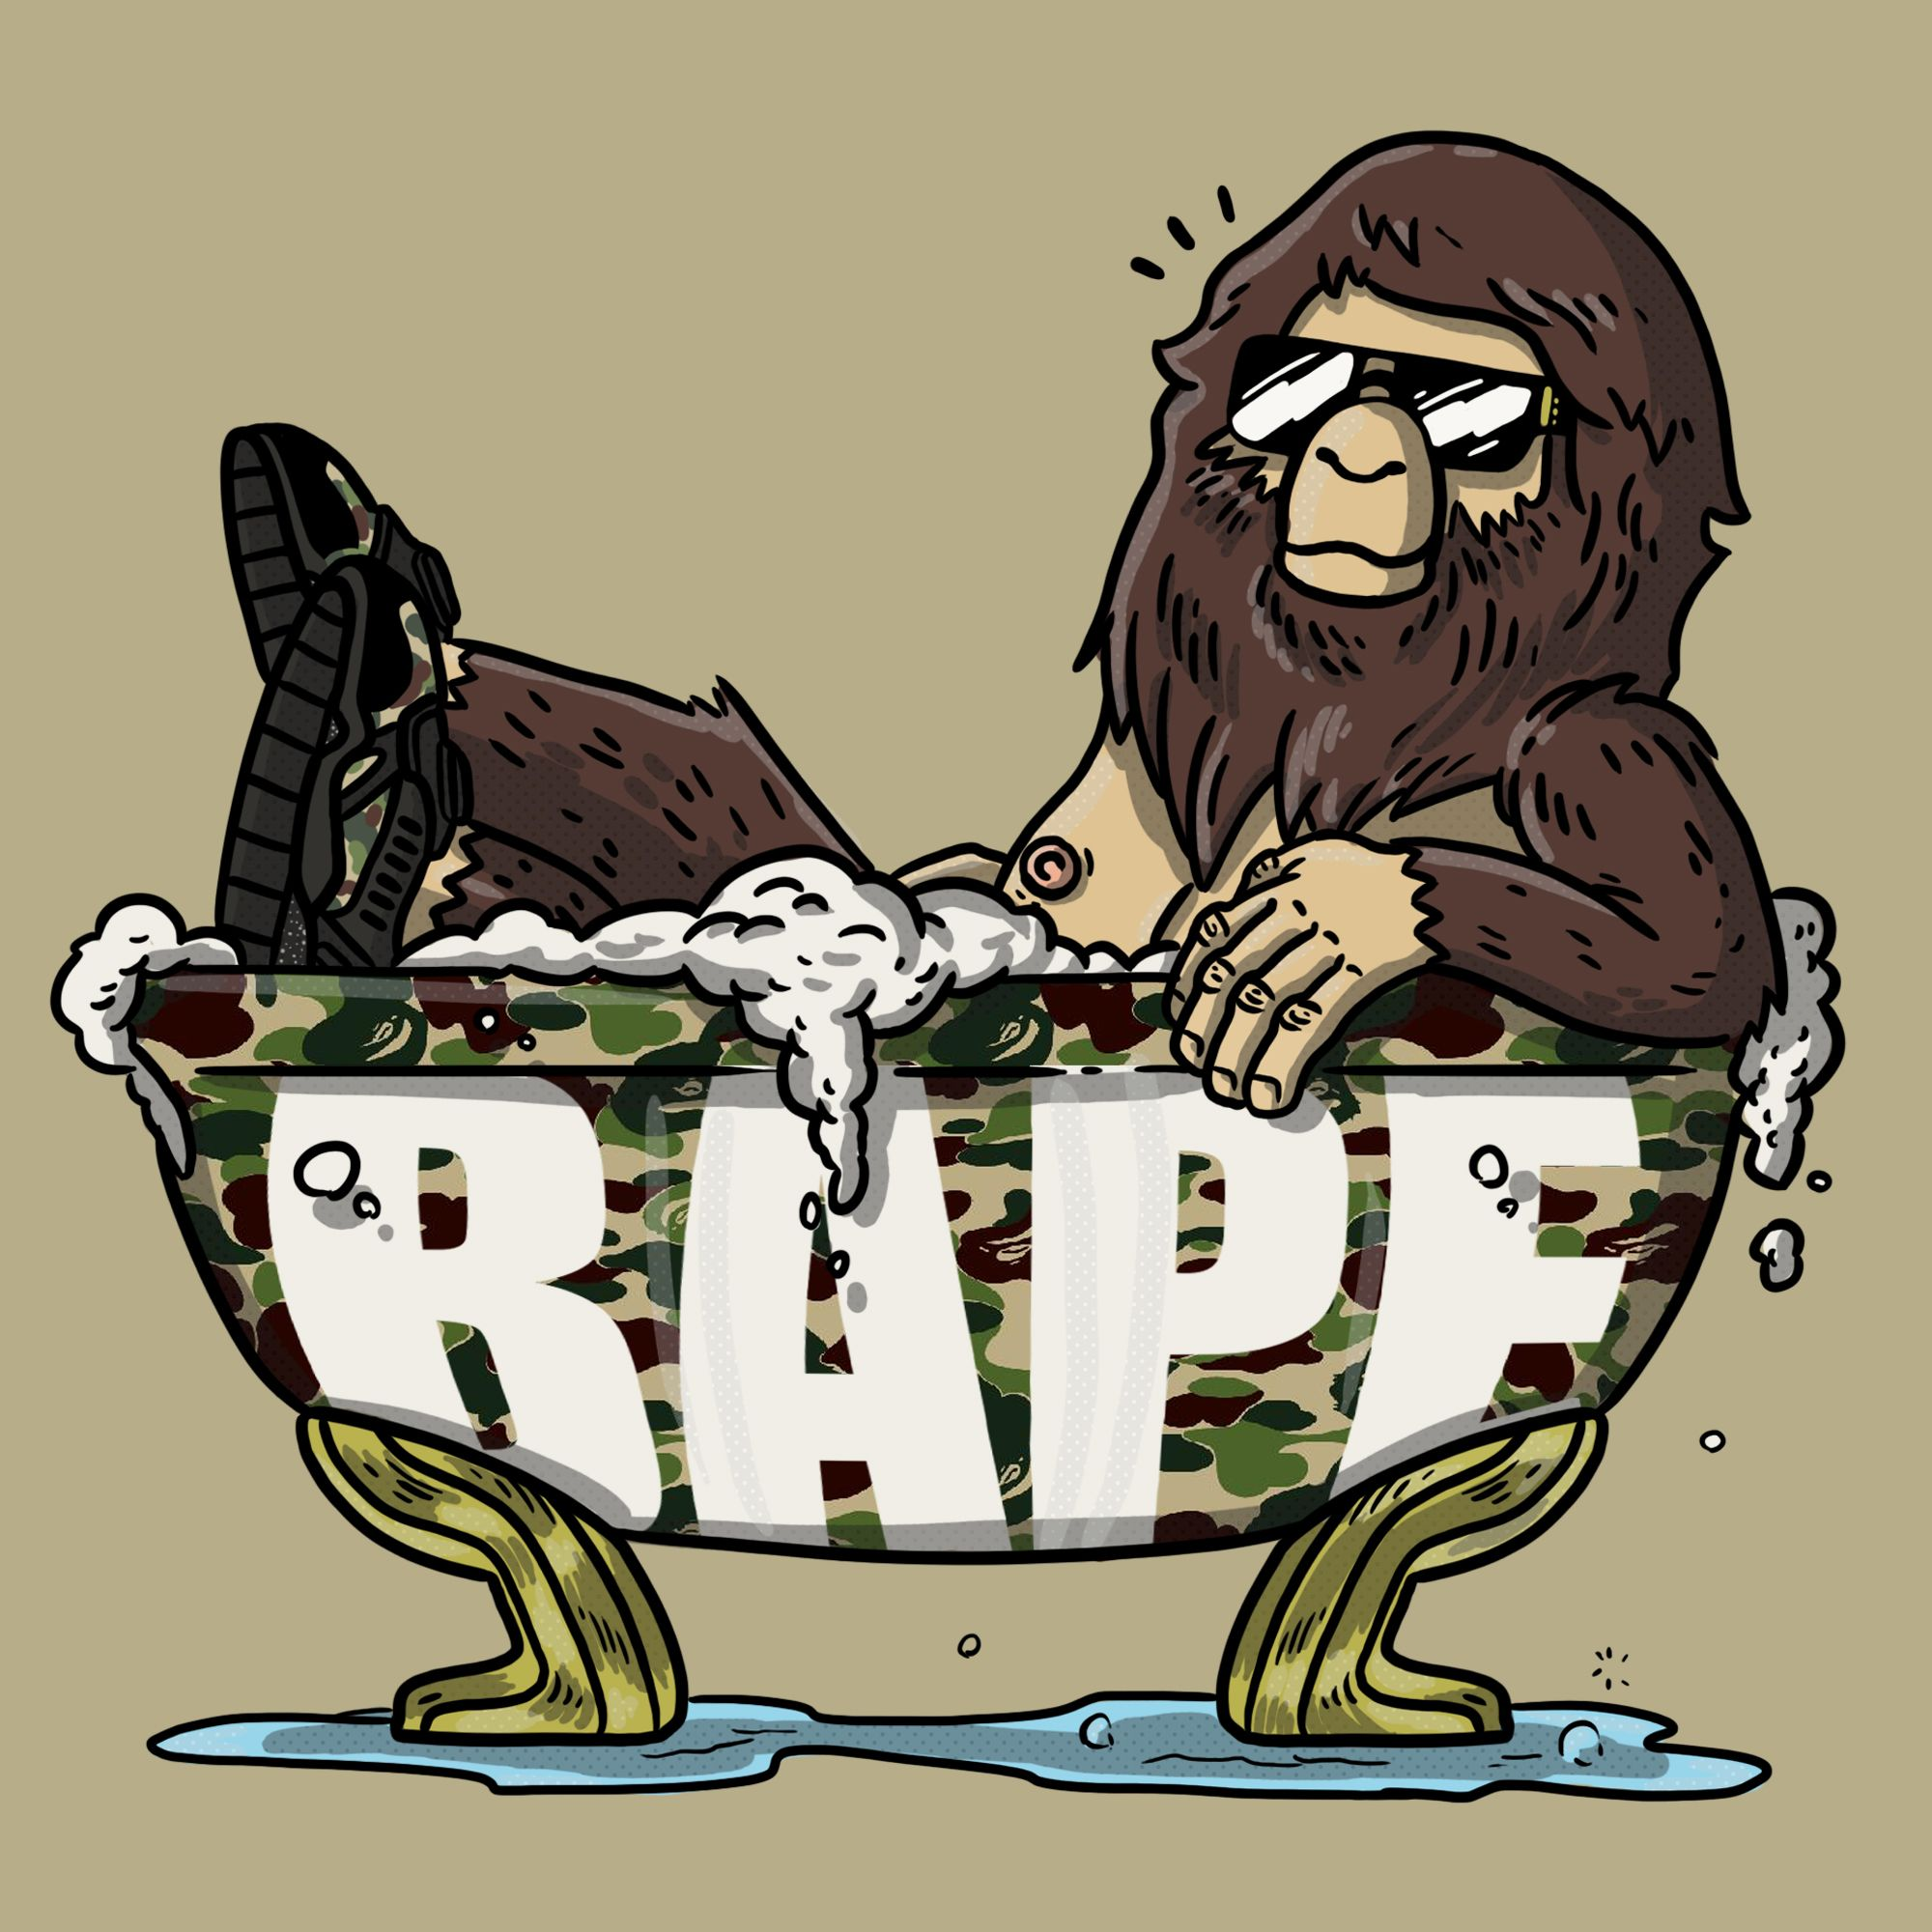 Bape A Bathing Ape Streetwear Design Puma Cartoon